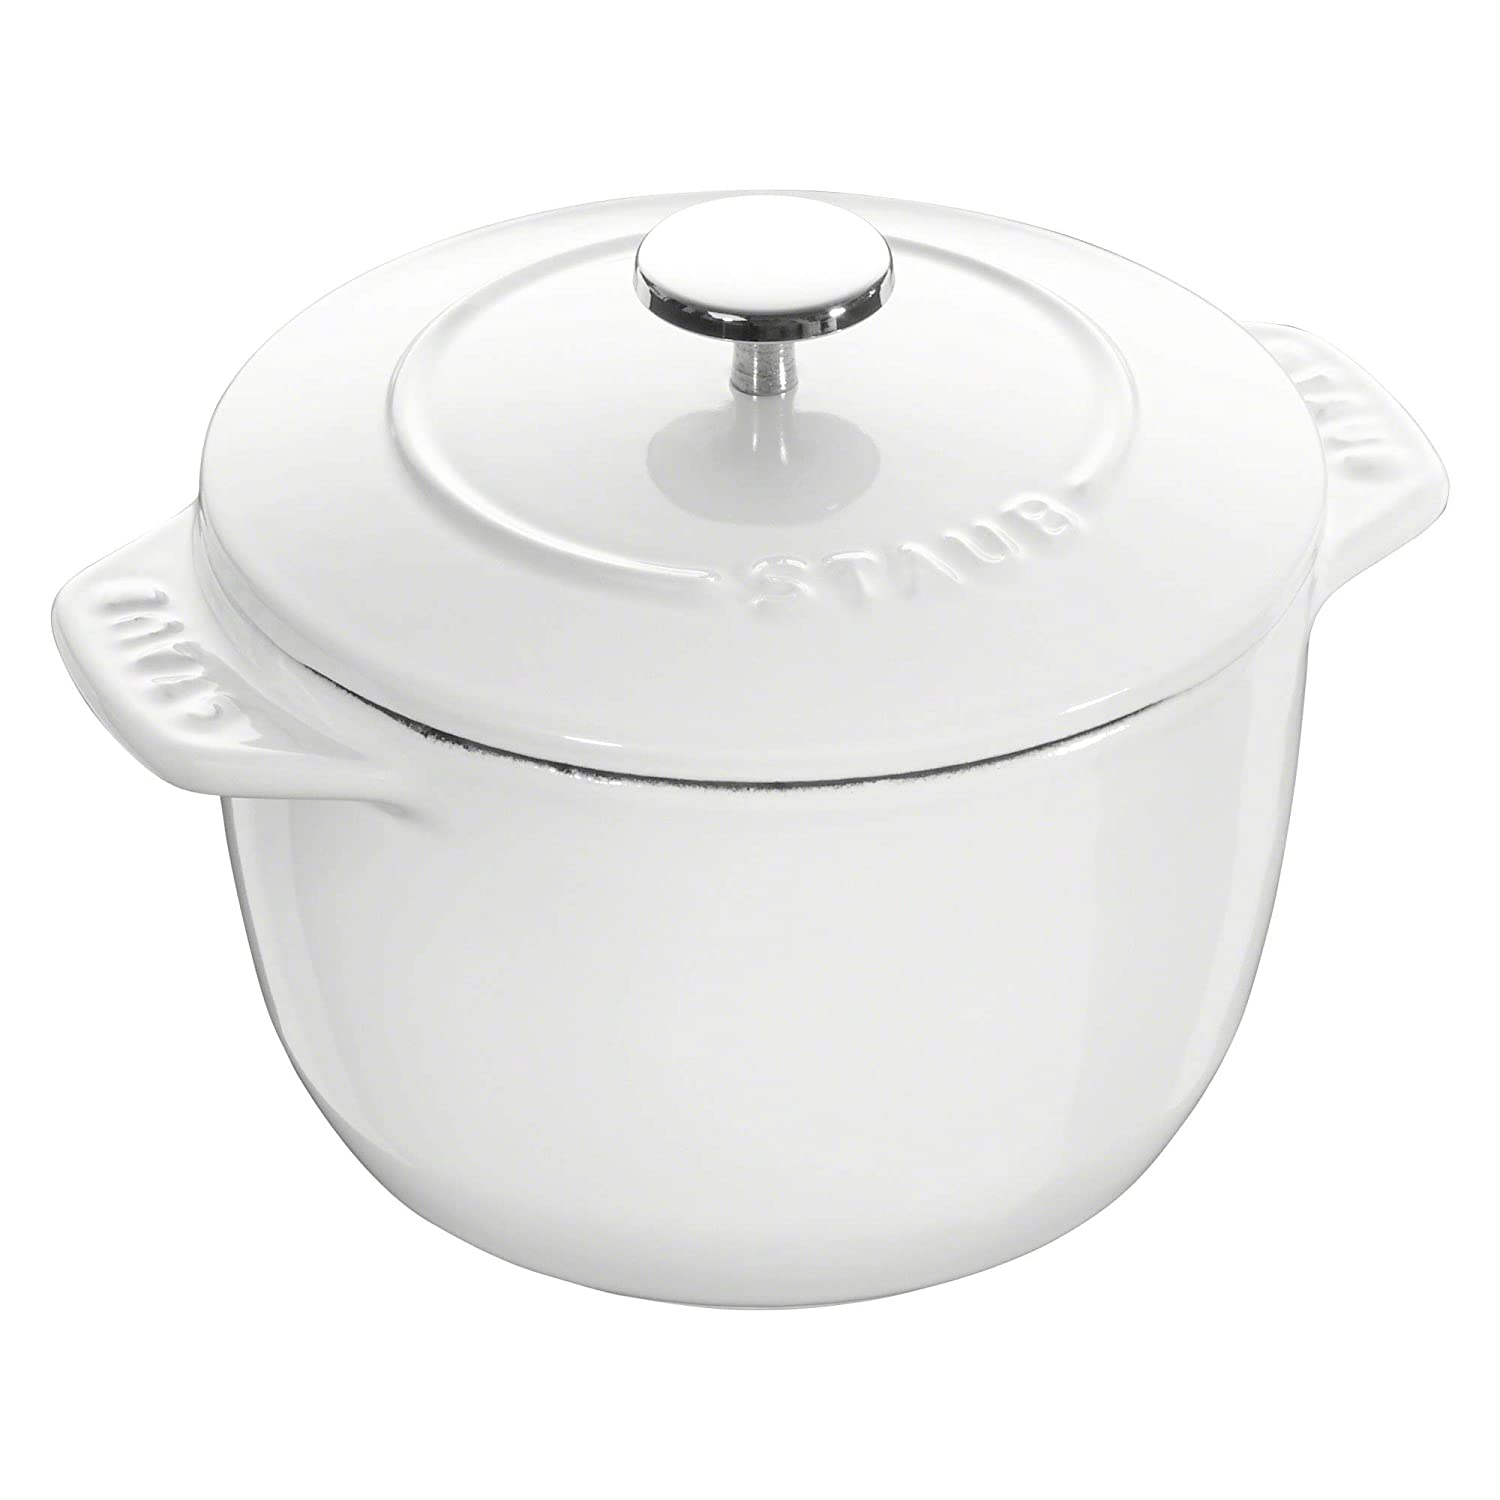 Staub Cast Iron 1.5-qt Petite French Oven - Matte White